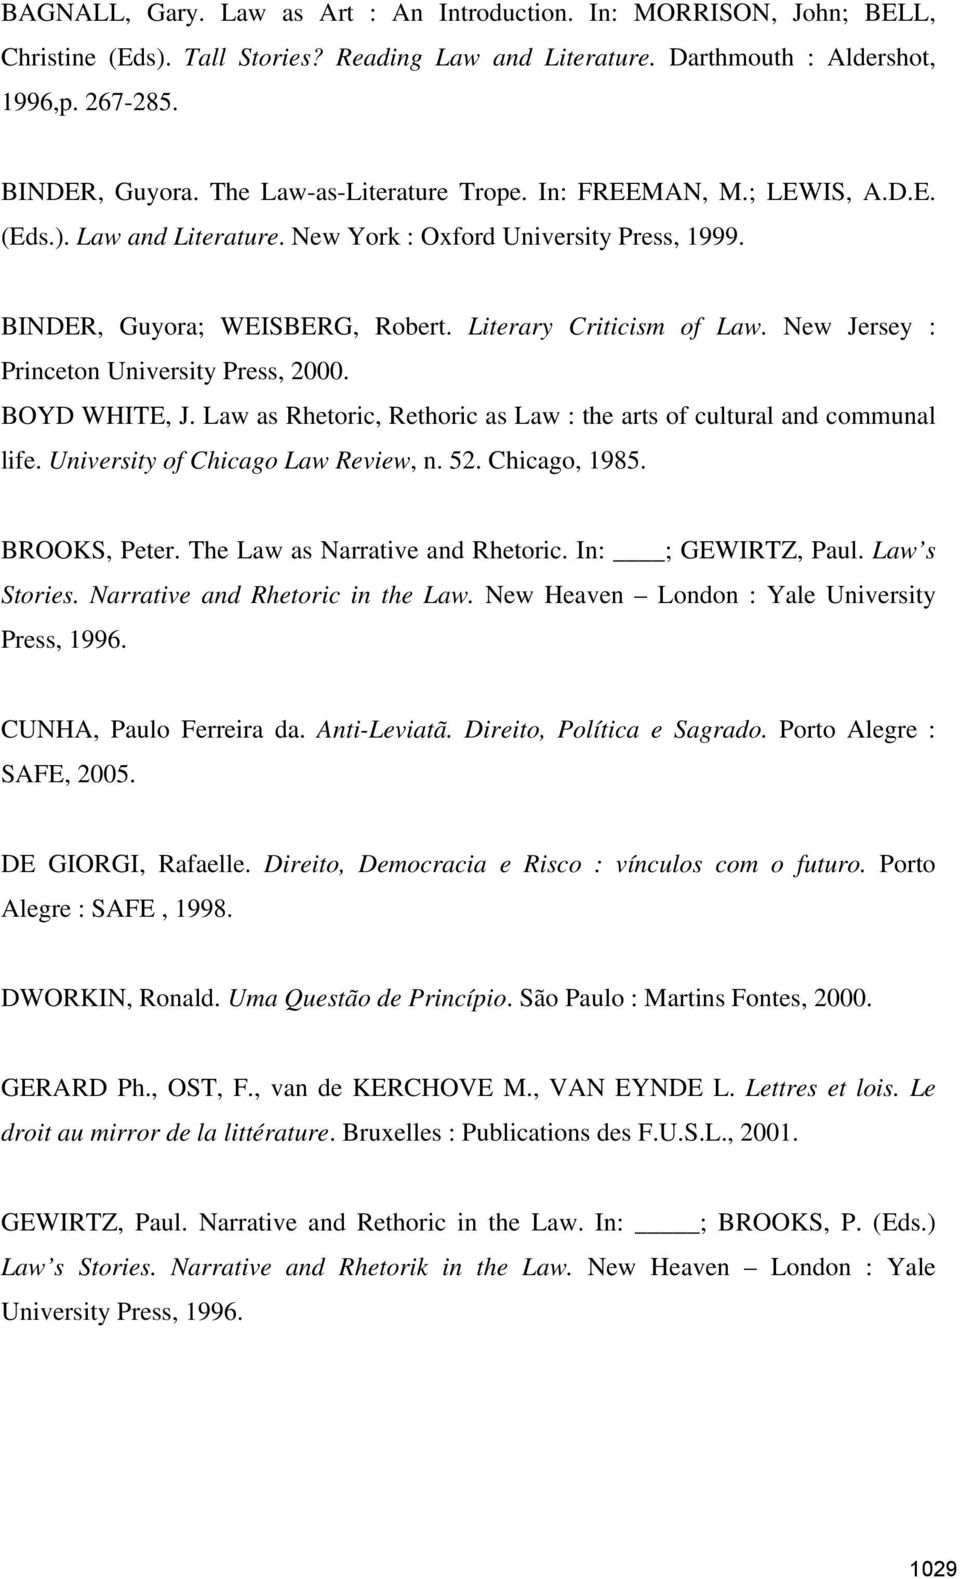 New Jersey : Princeton University Press, 2000. BOYD WHITE, J. Law as Rhetoric, Rethoric as Law : the arts of cultural and communal life. University of Chicago Law Review, n. 52. Chicago, 1985.